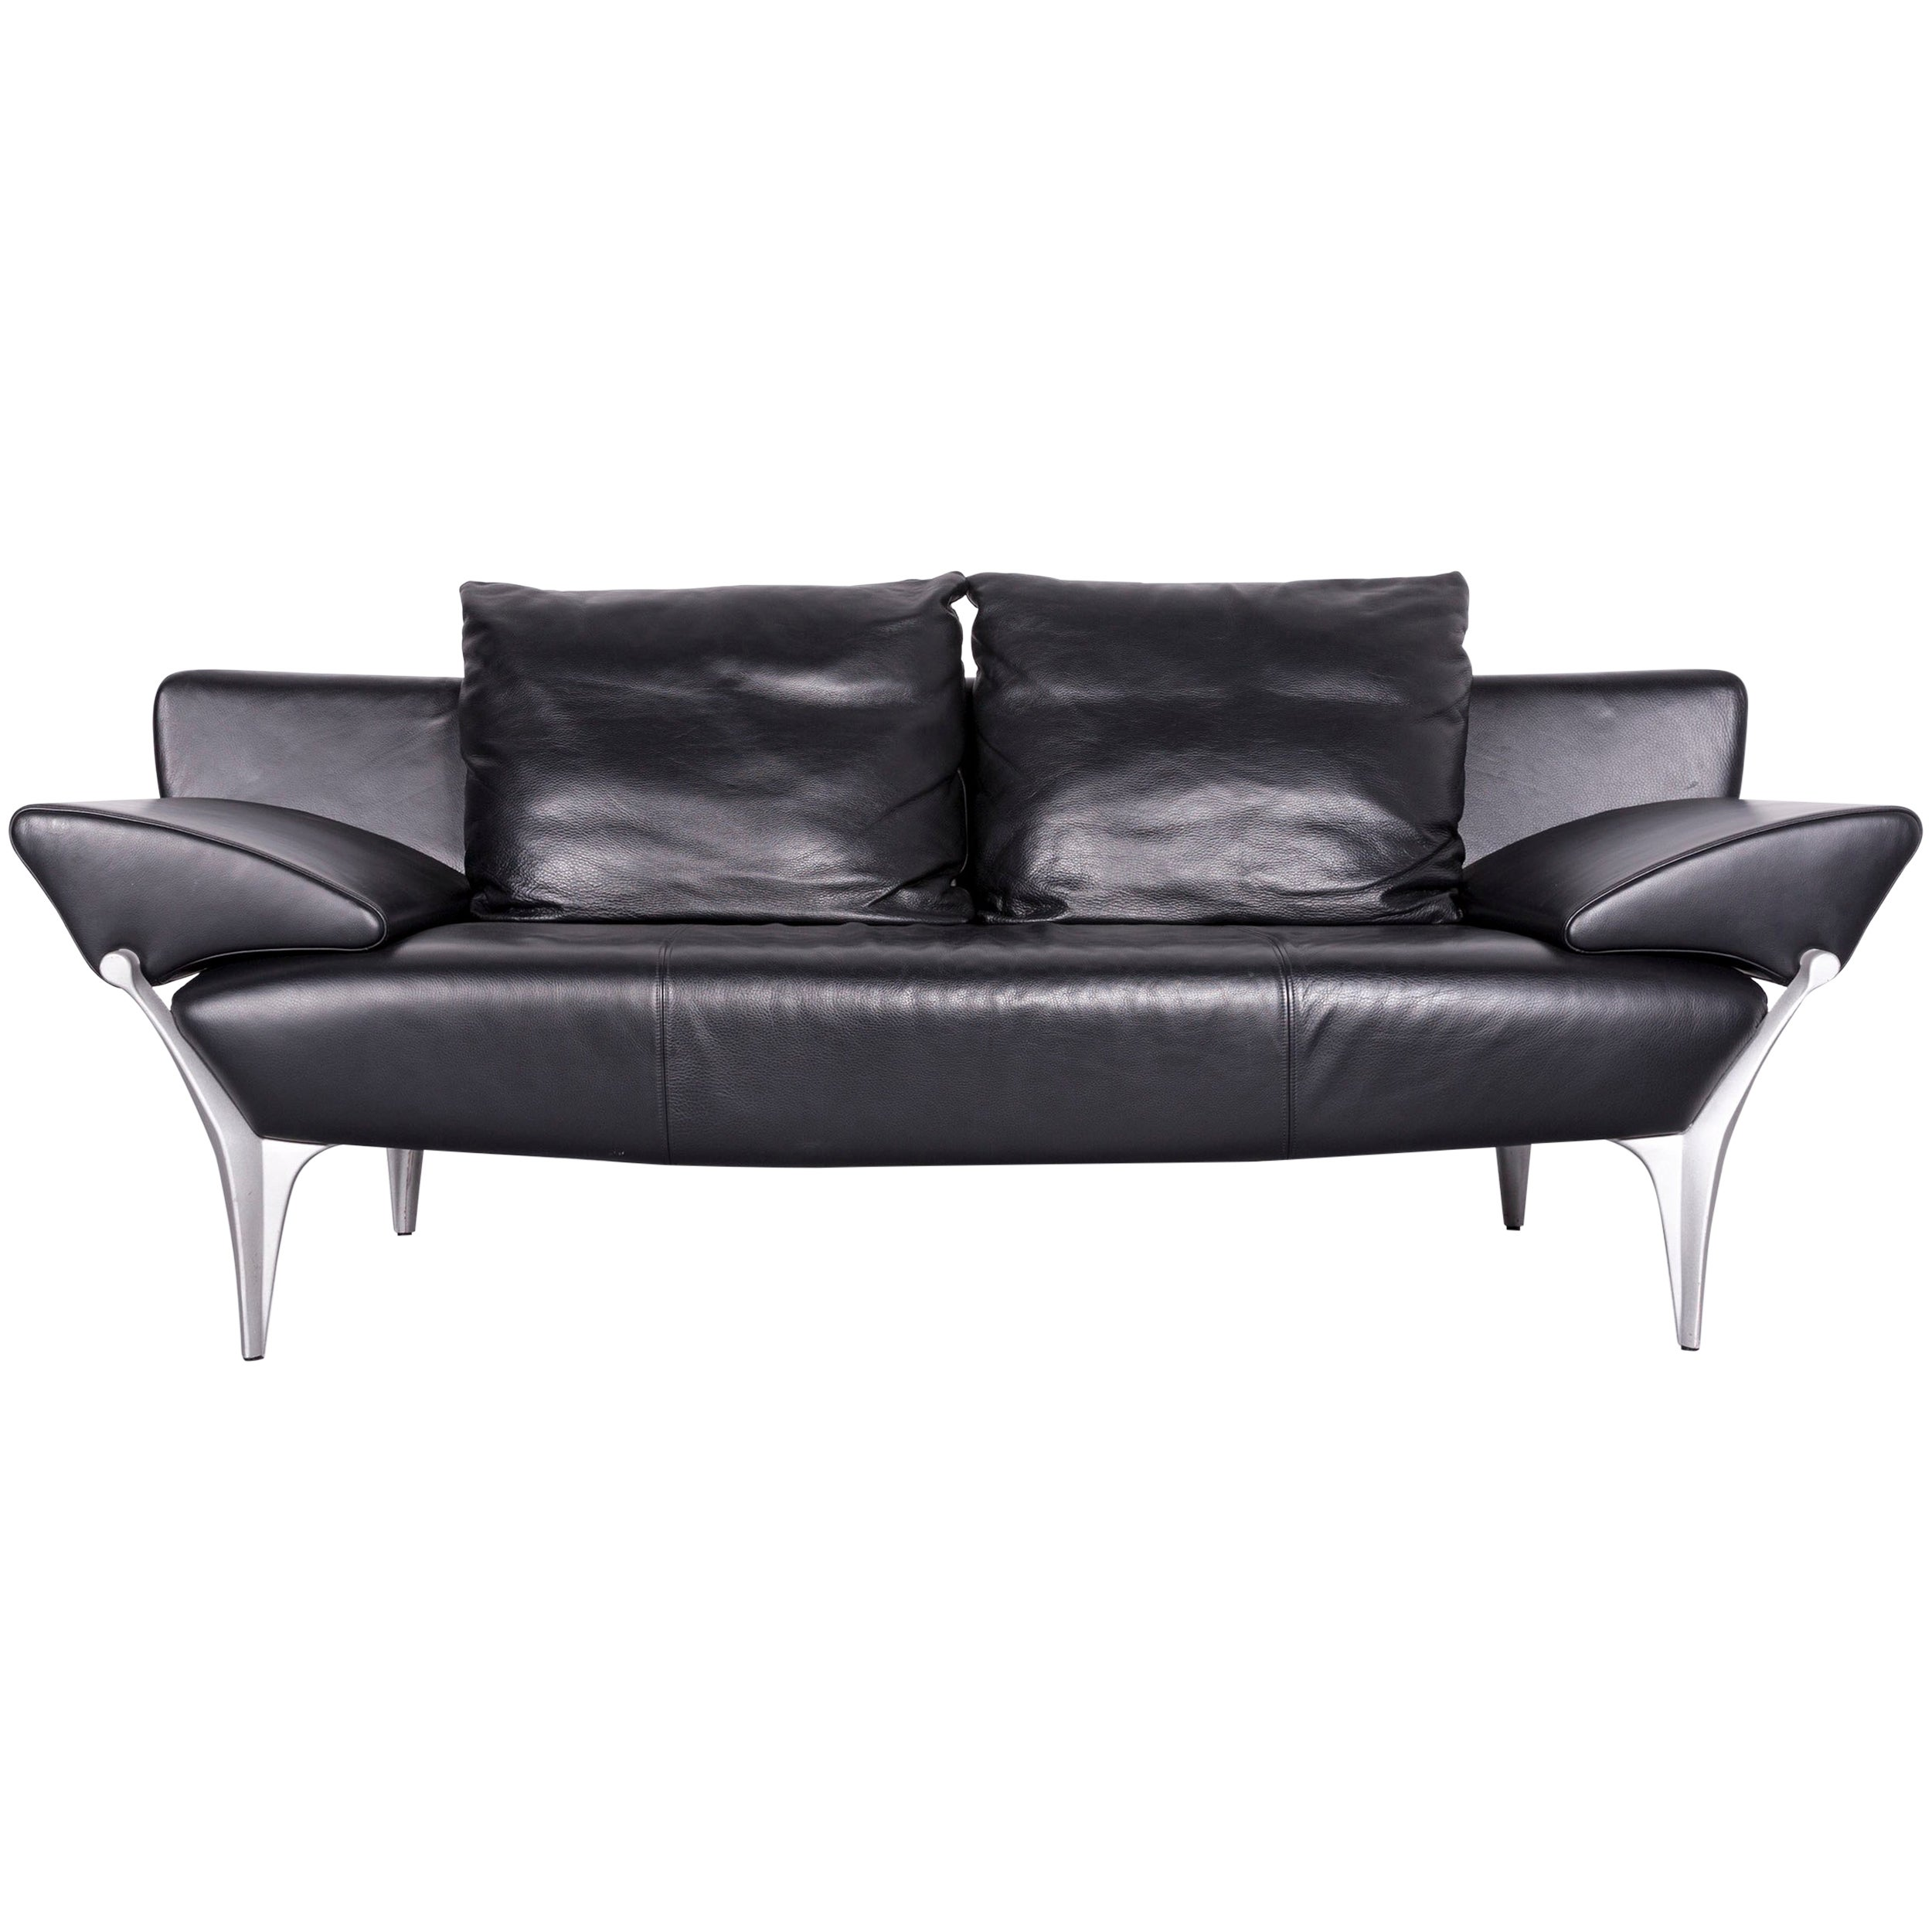 Rolf Benz Couch Rolf Benz 1600 Designer Leather Sofa Black Three Seat Couch